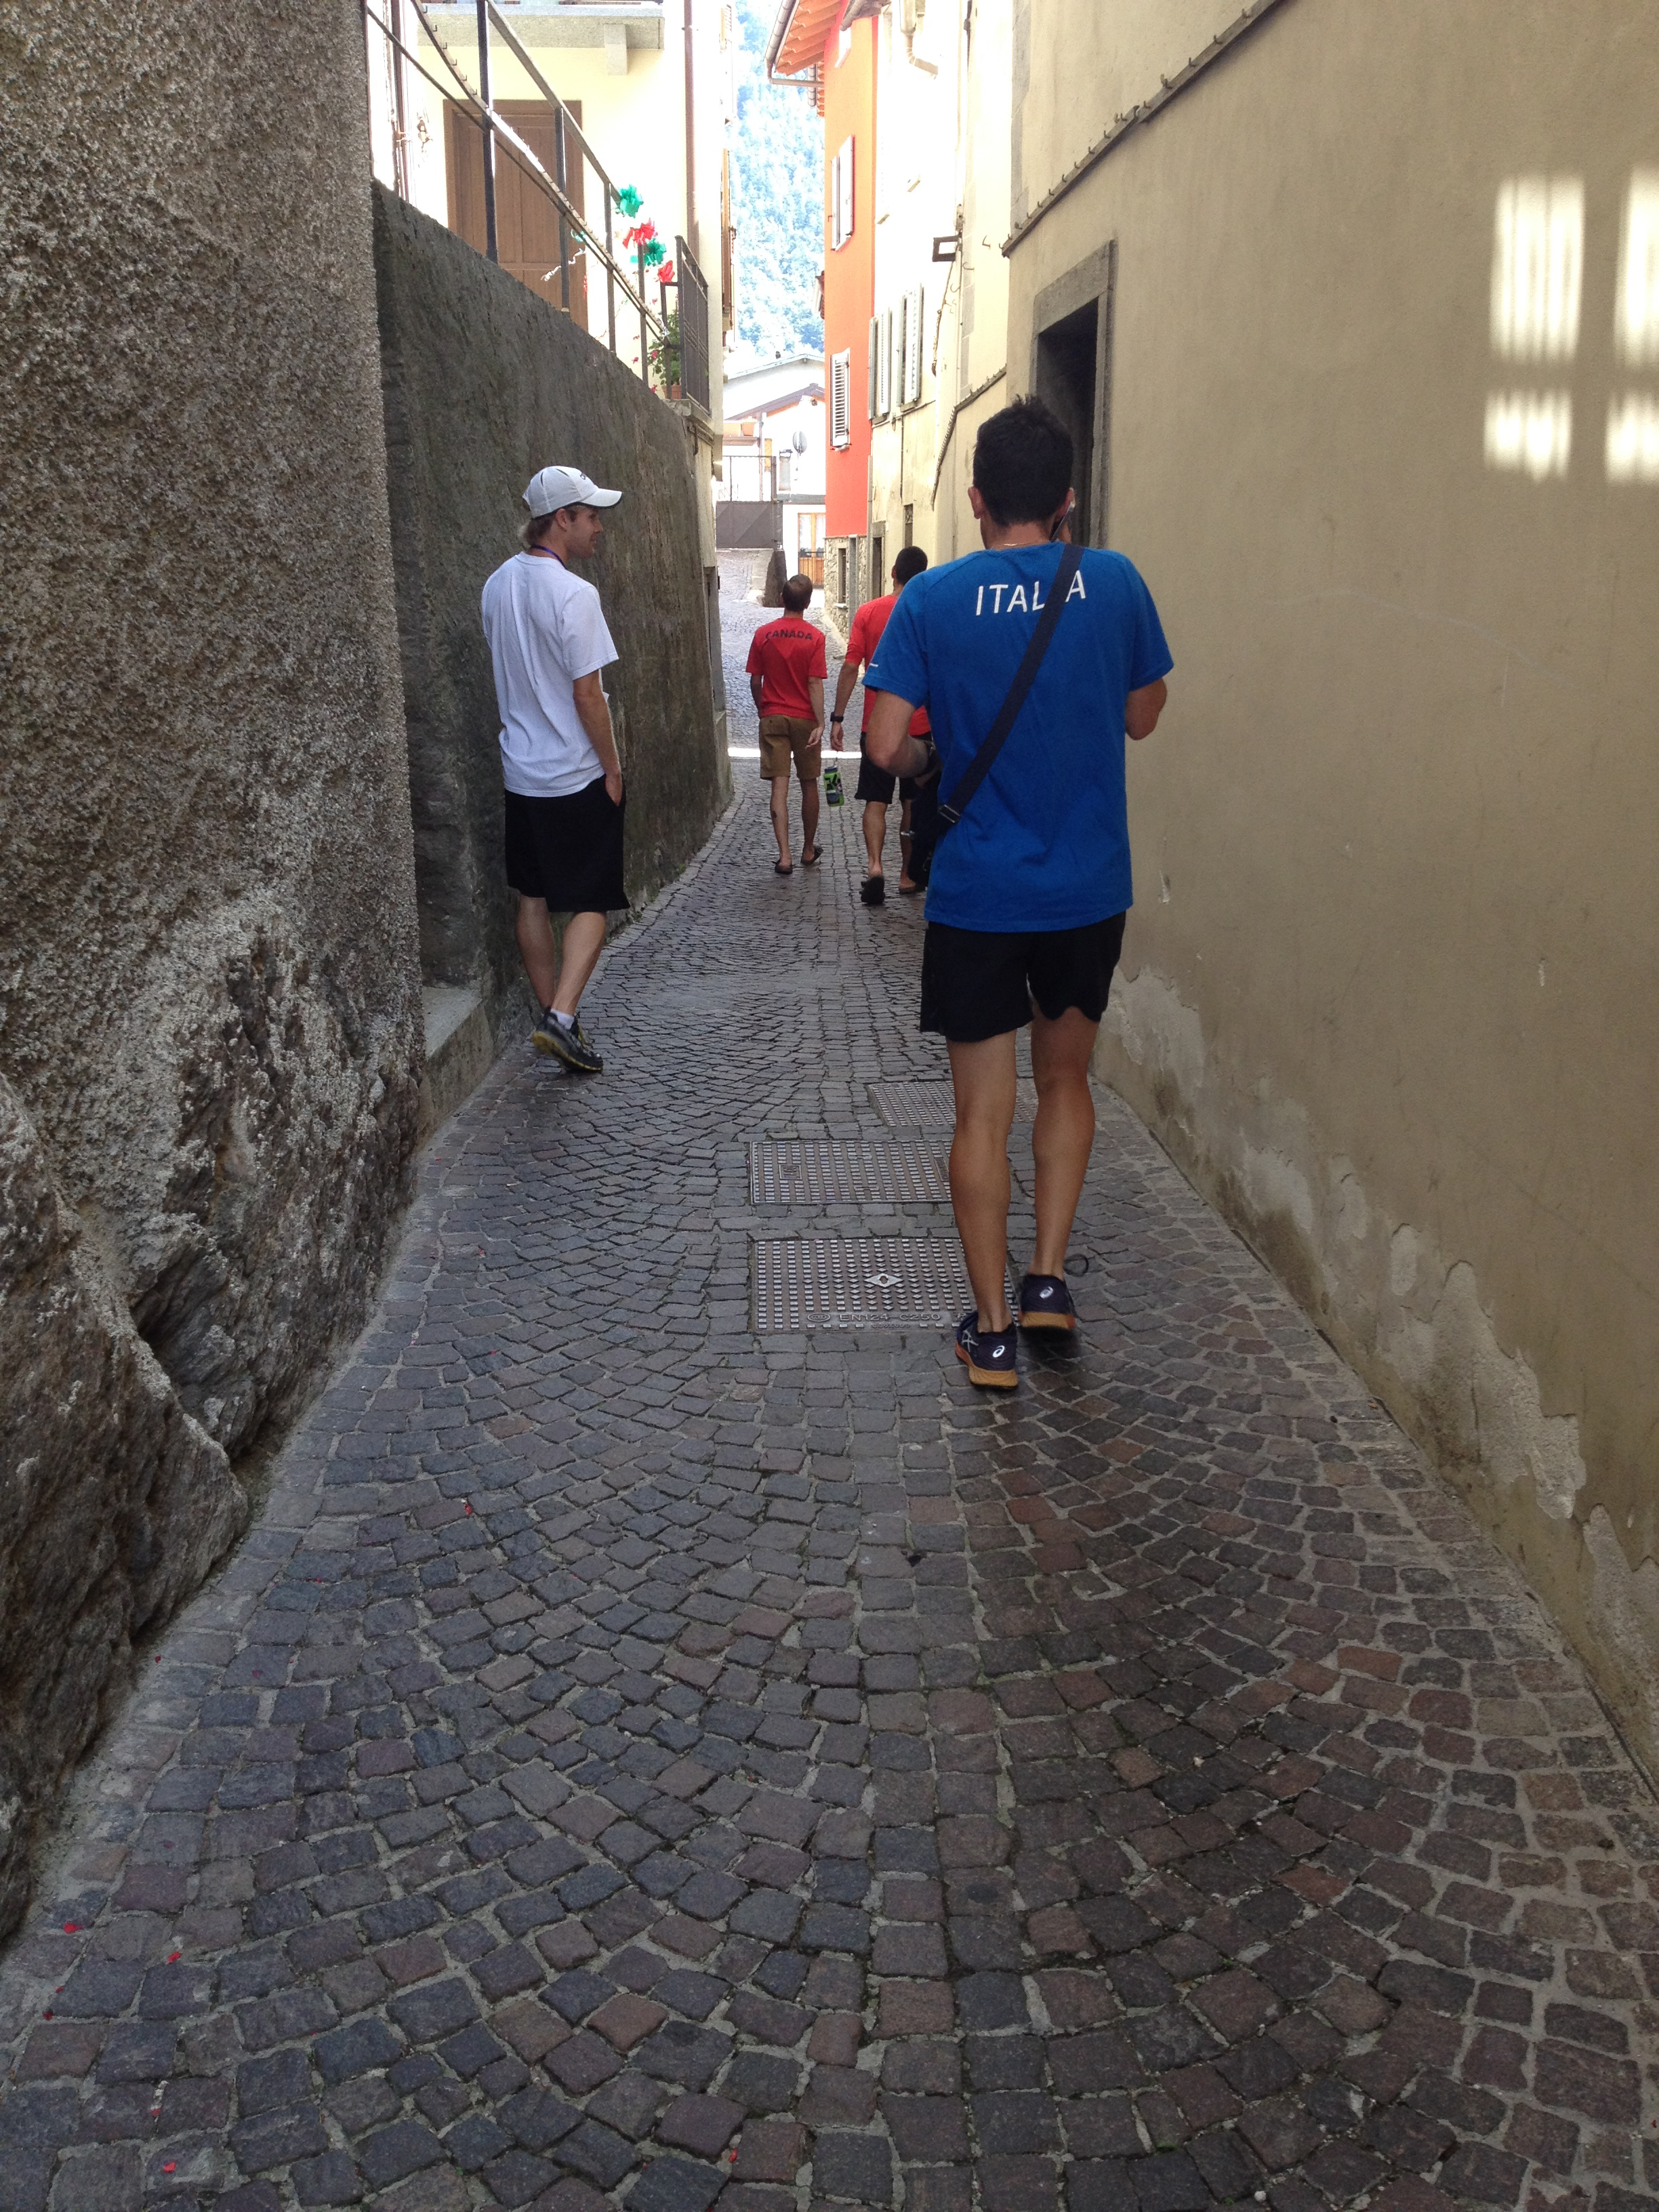 About 500m from the start line, the course narrowed to about 6 feet through a cobblestone alley.